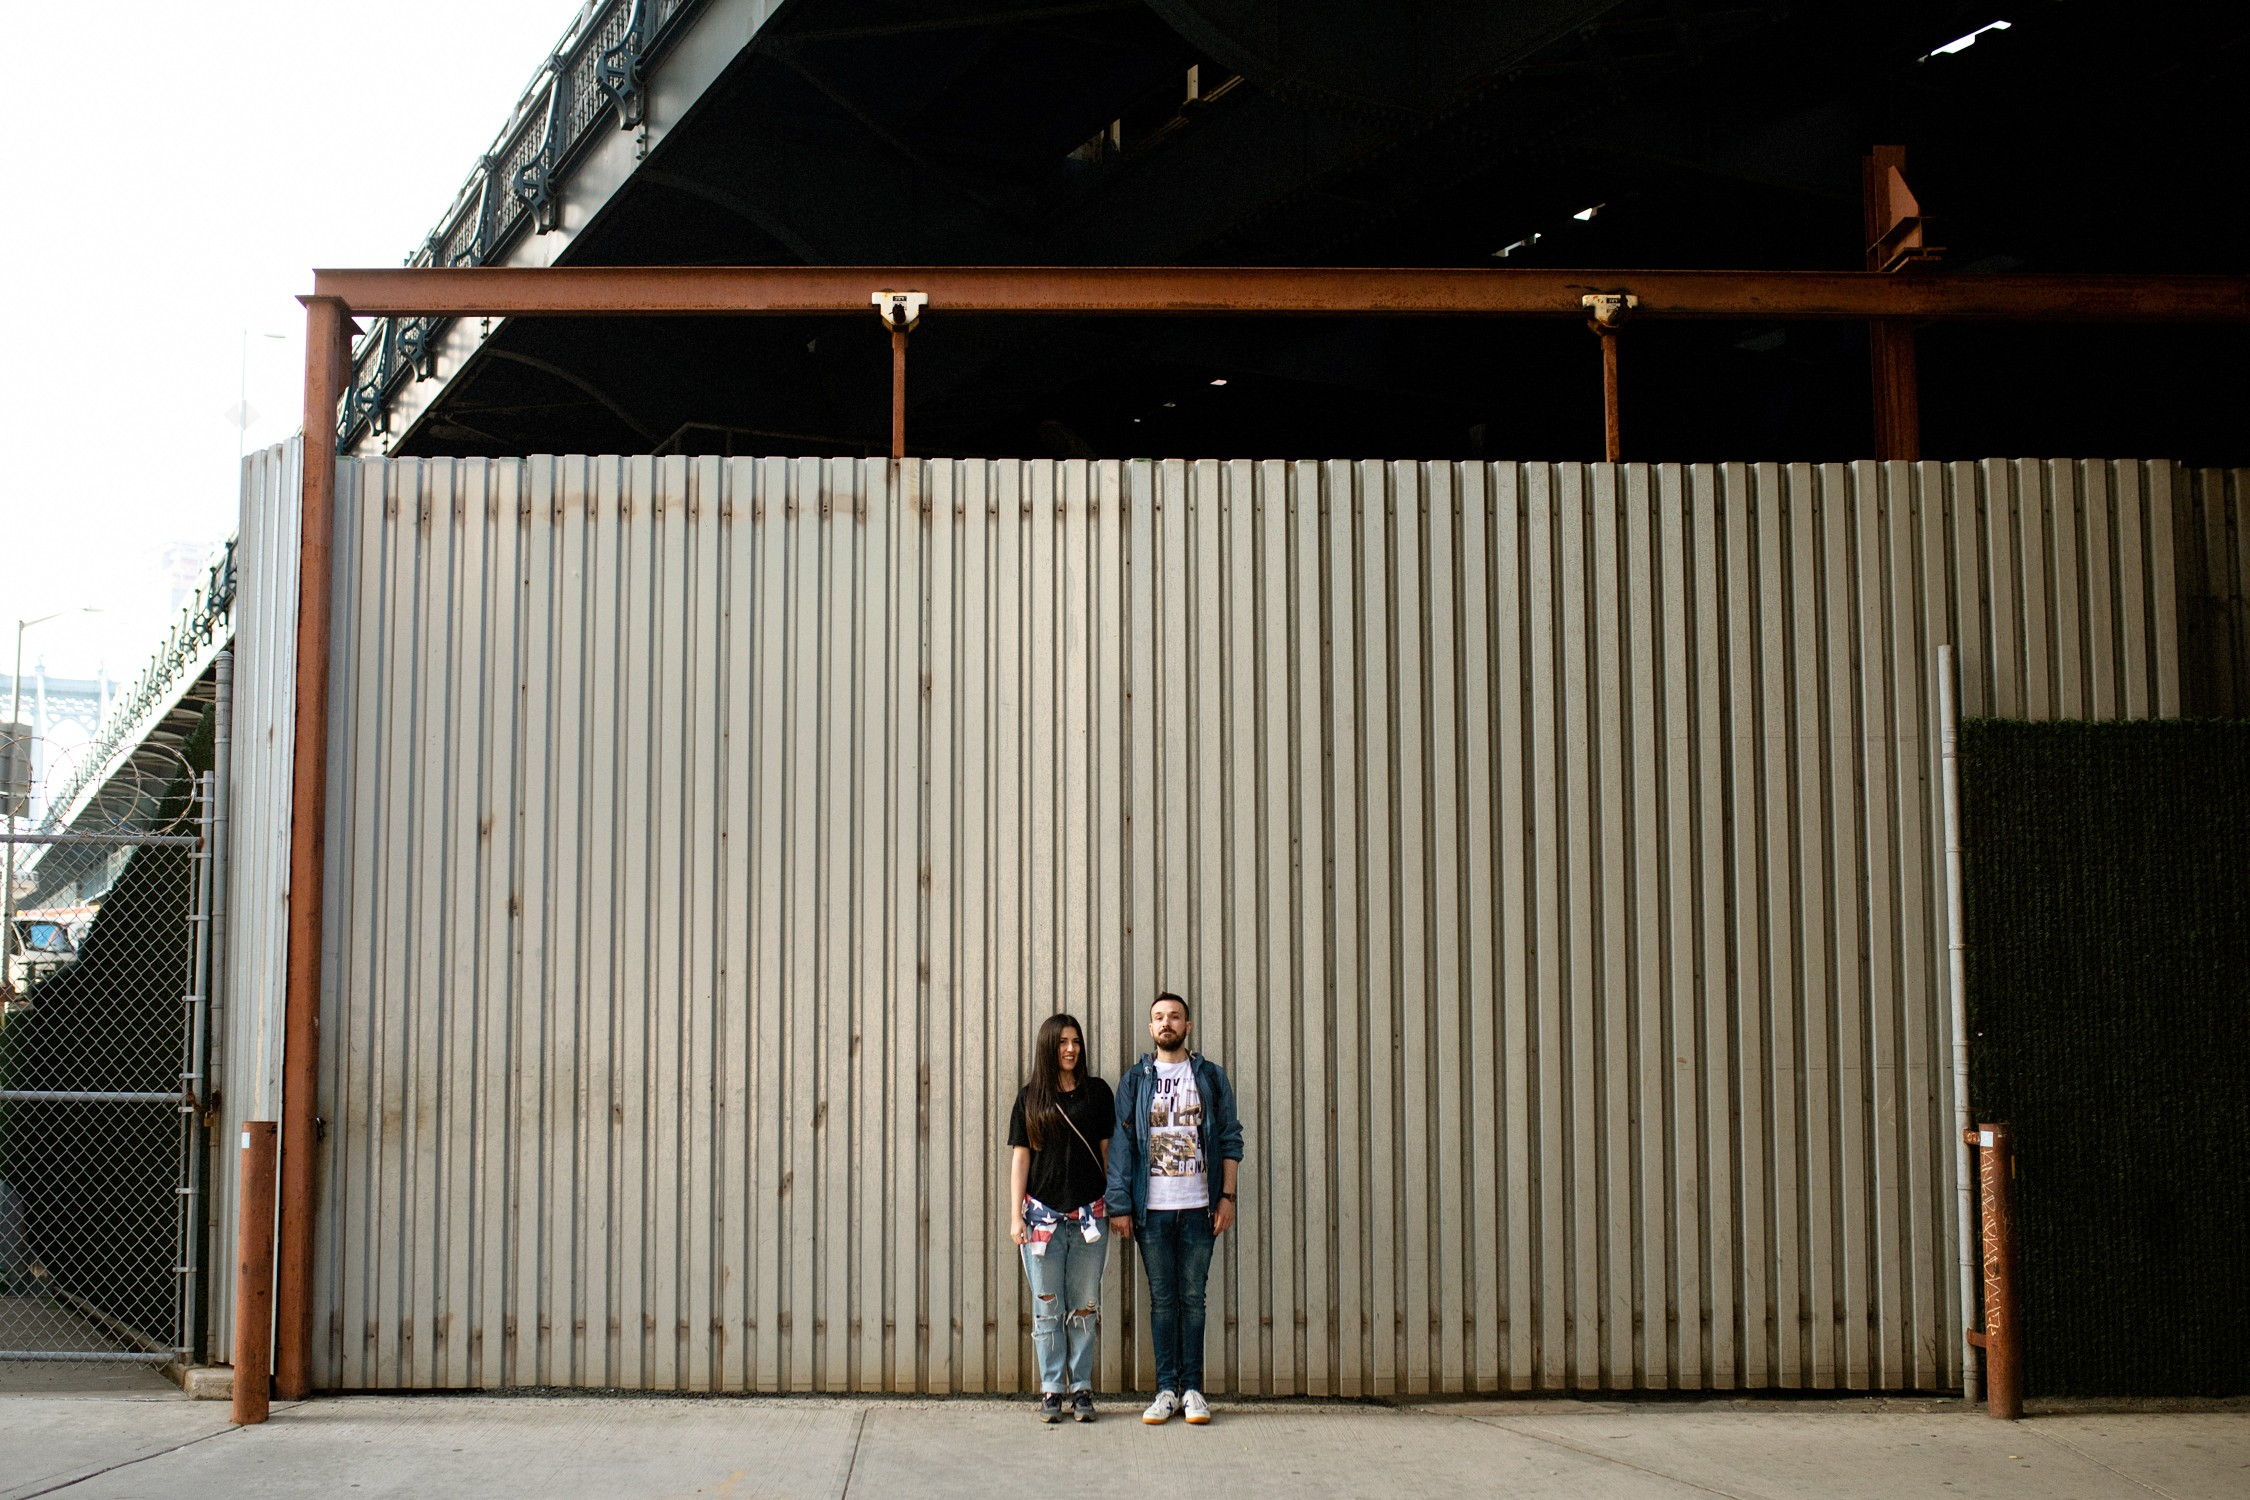 Engagement Photos in DUMBO - Couple standing side by side and looking at the camera